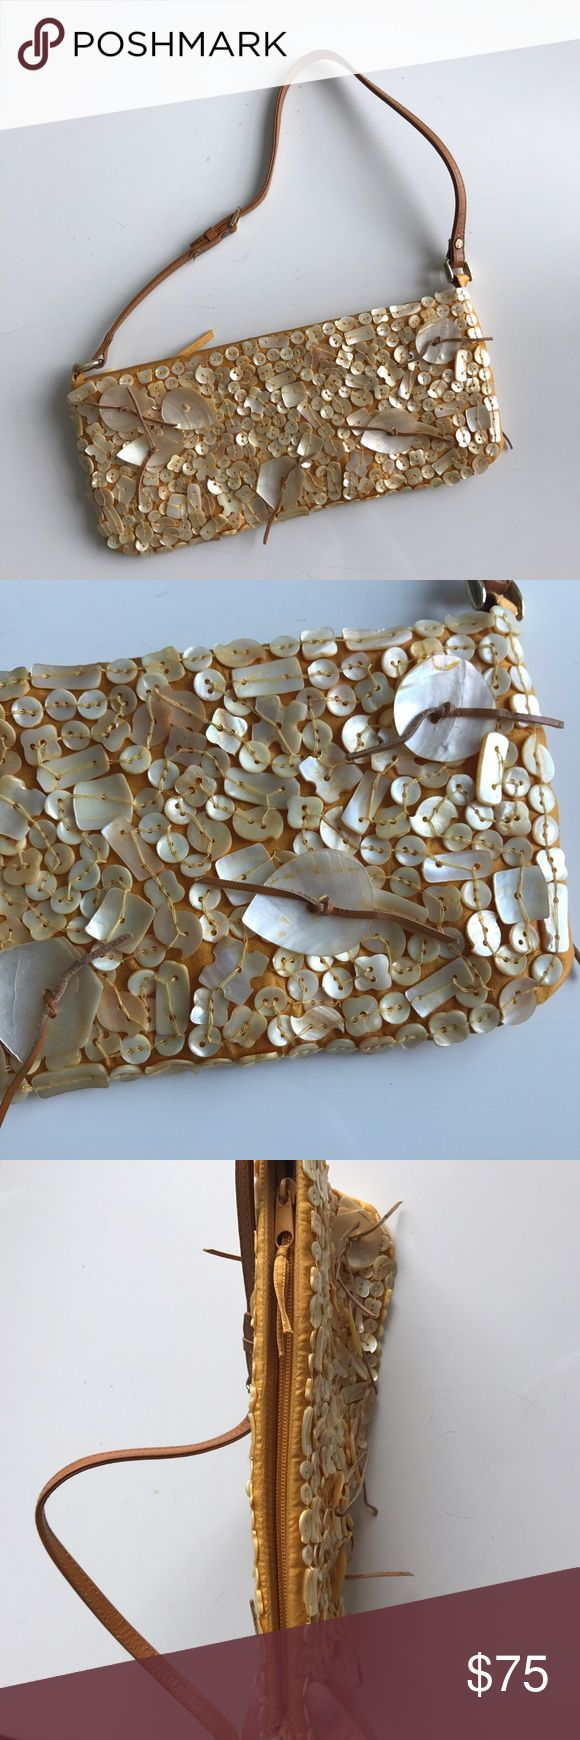 Chan Luu mother of pearl baguette bag. Chan Luu mother of pearl shell bag. Shells are sewn on, multiple sizes. No missing shells! Orange gold color silk bag with yellow gold mother of pearl shells. Tan leather strap. Zipper closure. Baguette shape. Perfect condition. Never used. Chan Luu Bags Mini Bags